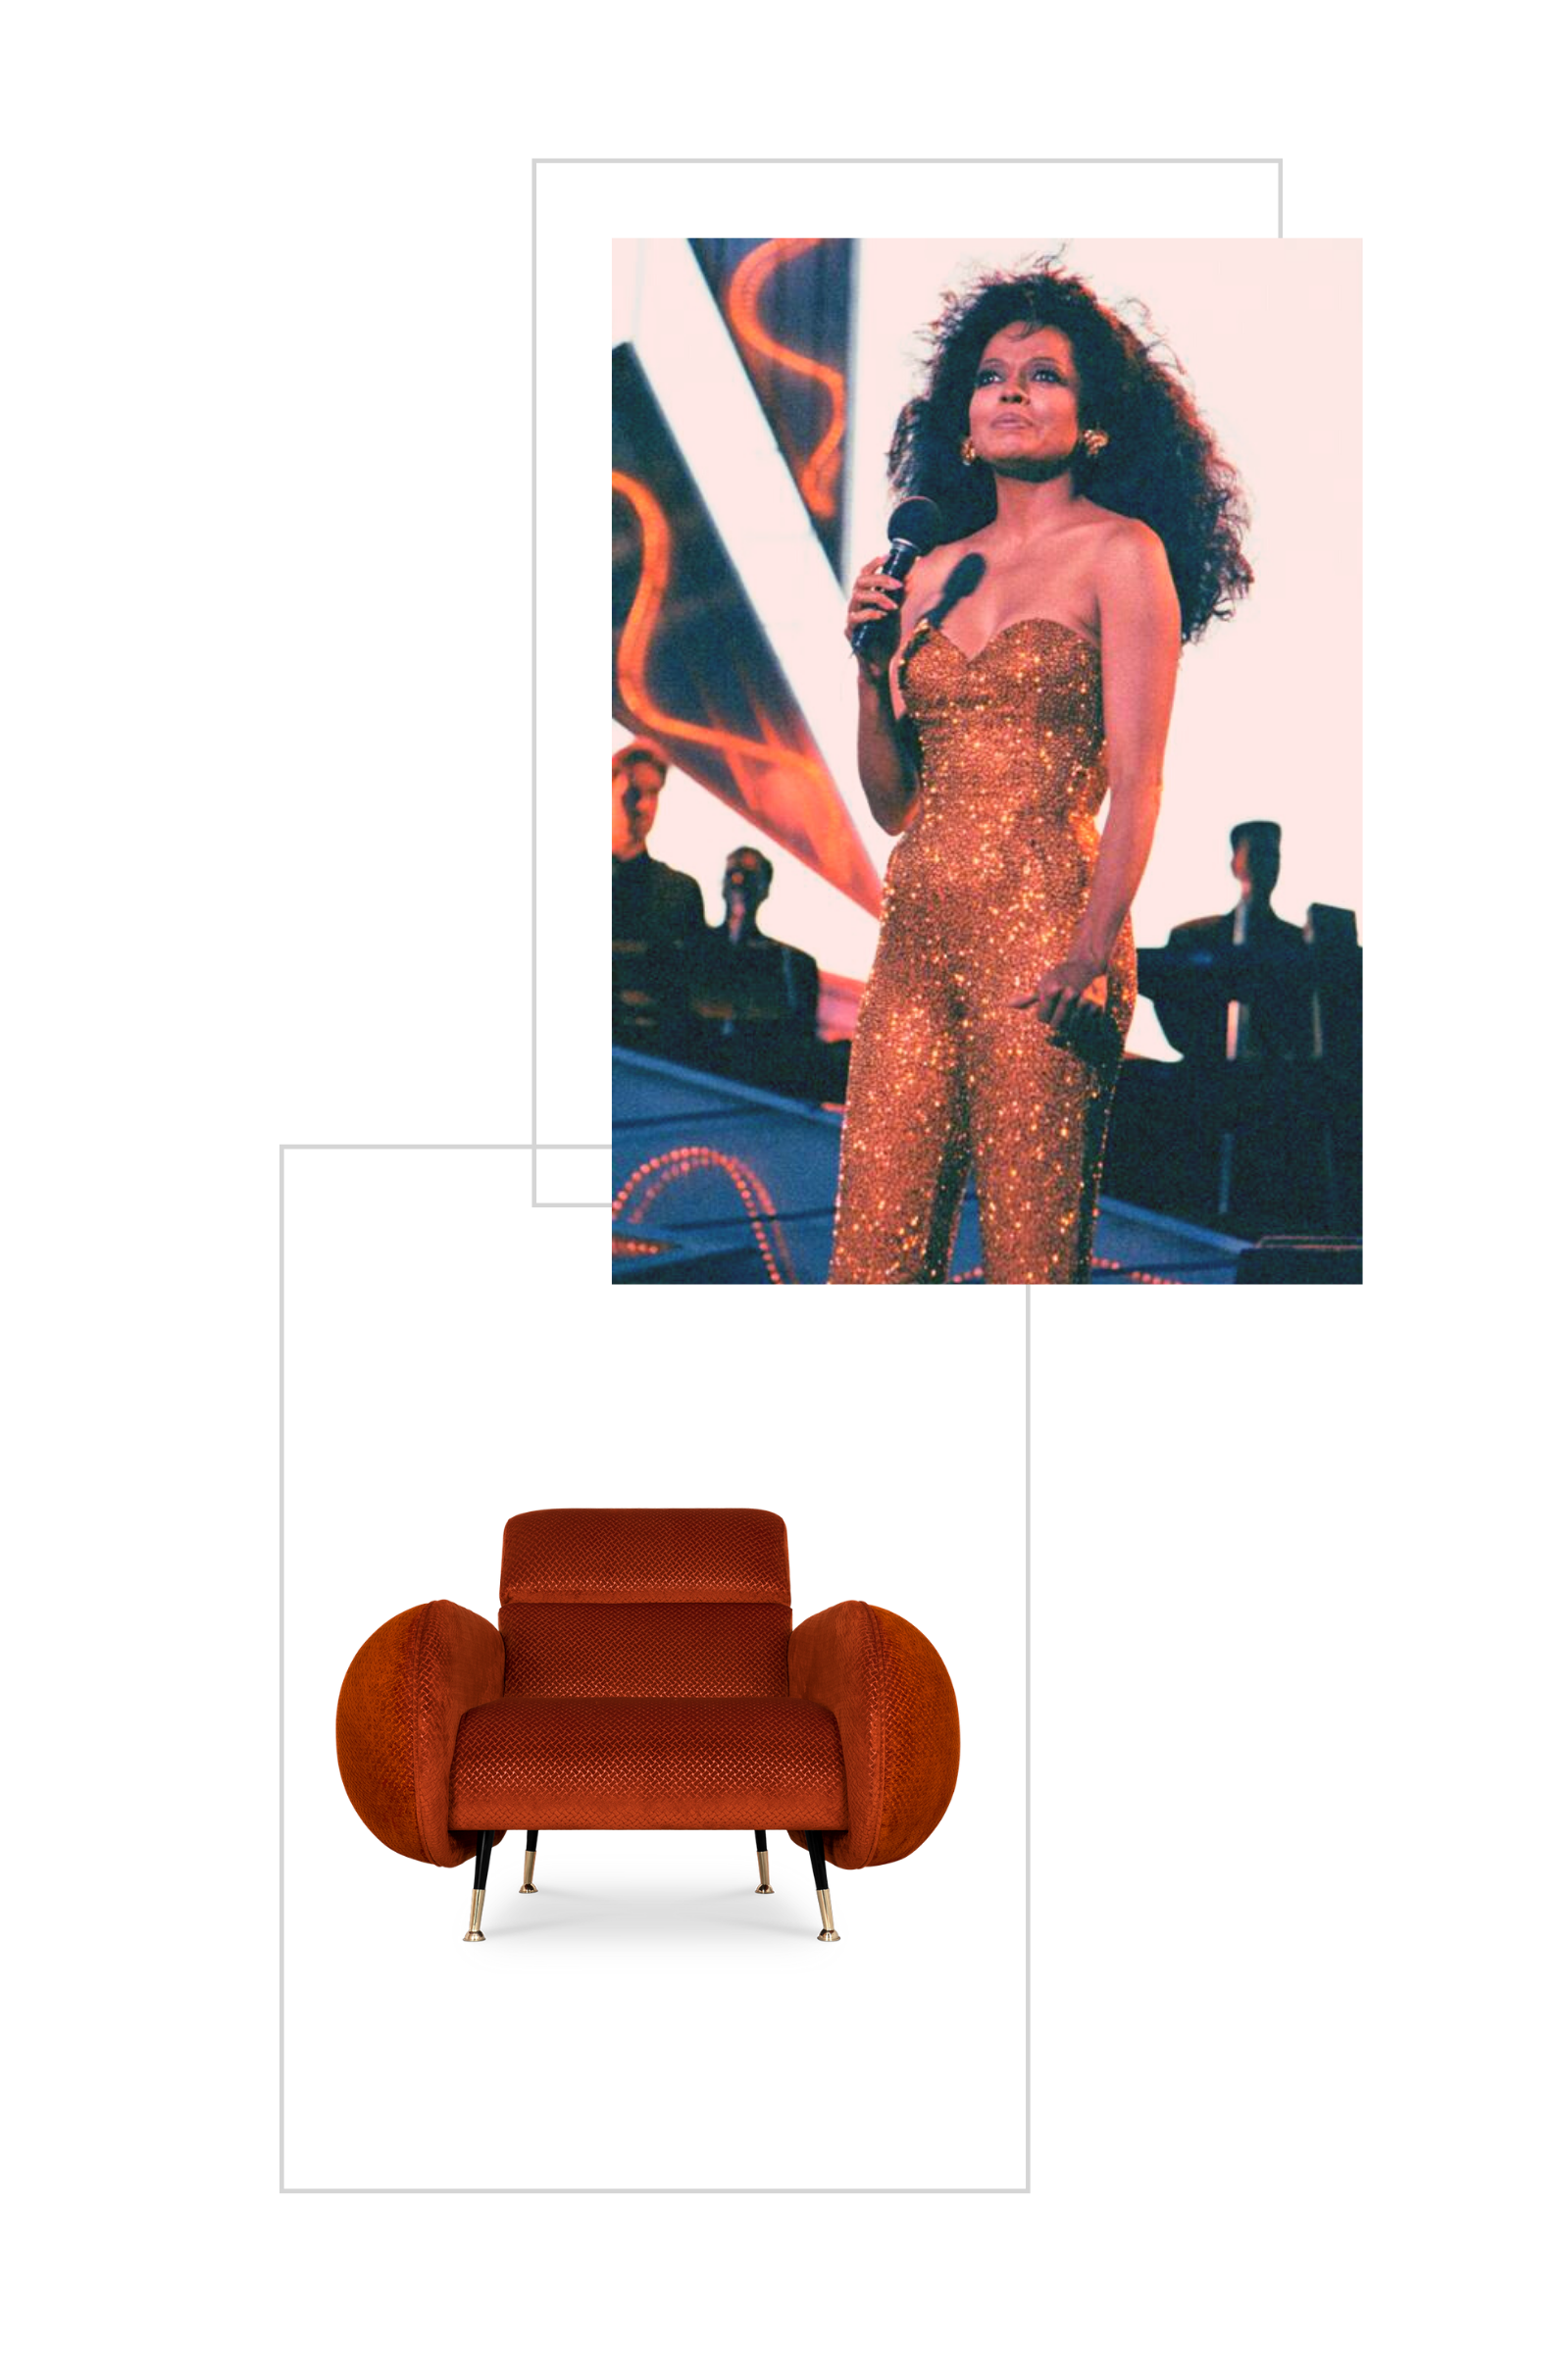 Vintage Style: Get Inspired By This Incredible Diana Ross OutfitsVintage Style: Get Inspired By This Incredible Diana Ross Outfits vintage style Vintage Style: Get Inspired By This Incredible Diana Ross Outfits Design sem nome